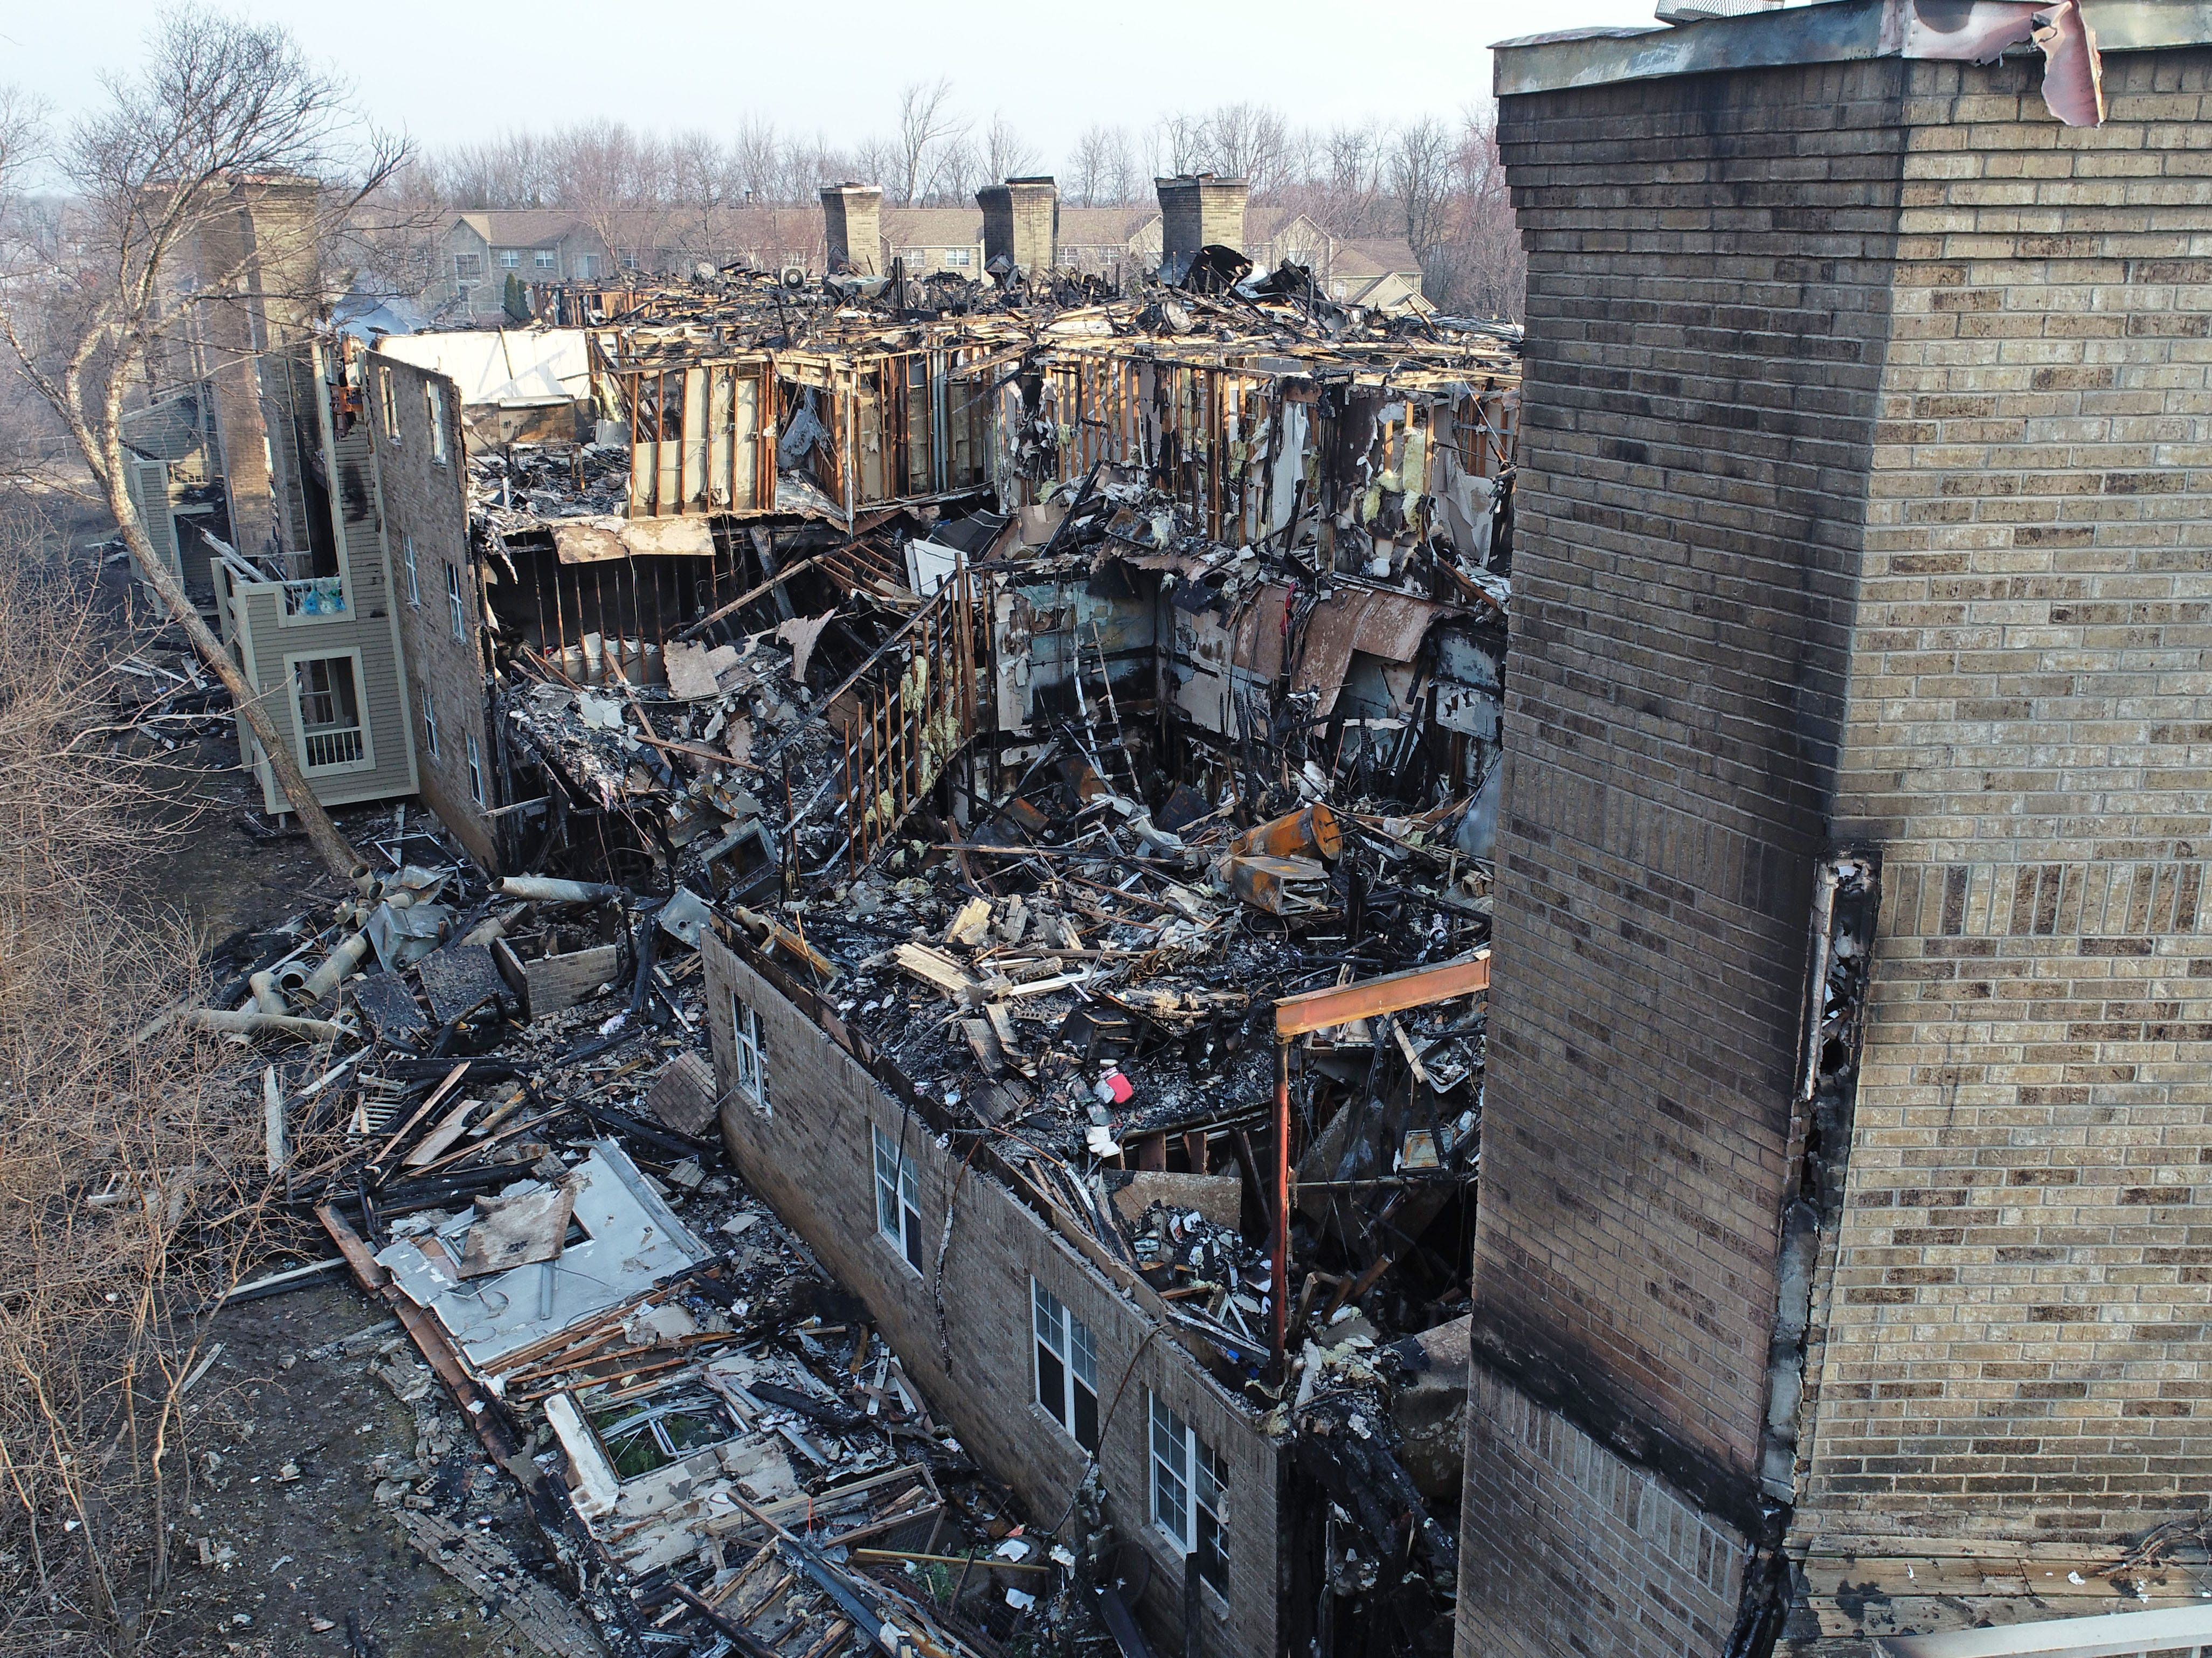 An aerial view from a drone shows the destruction.